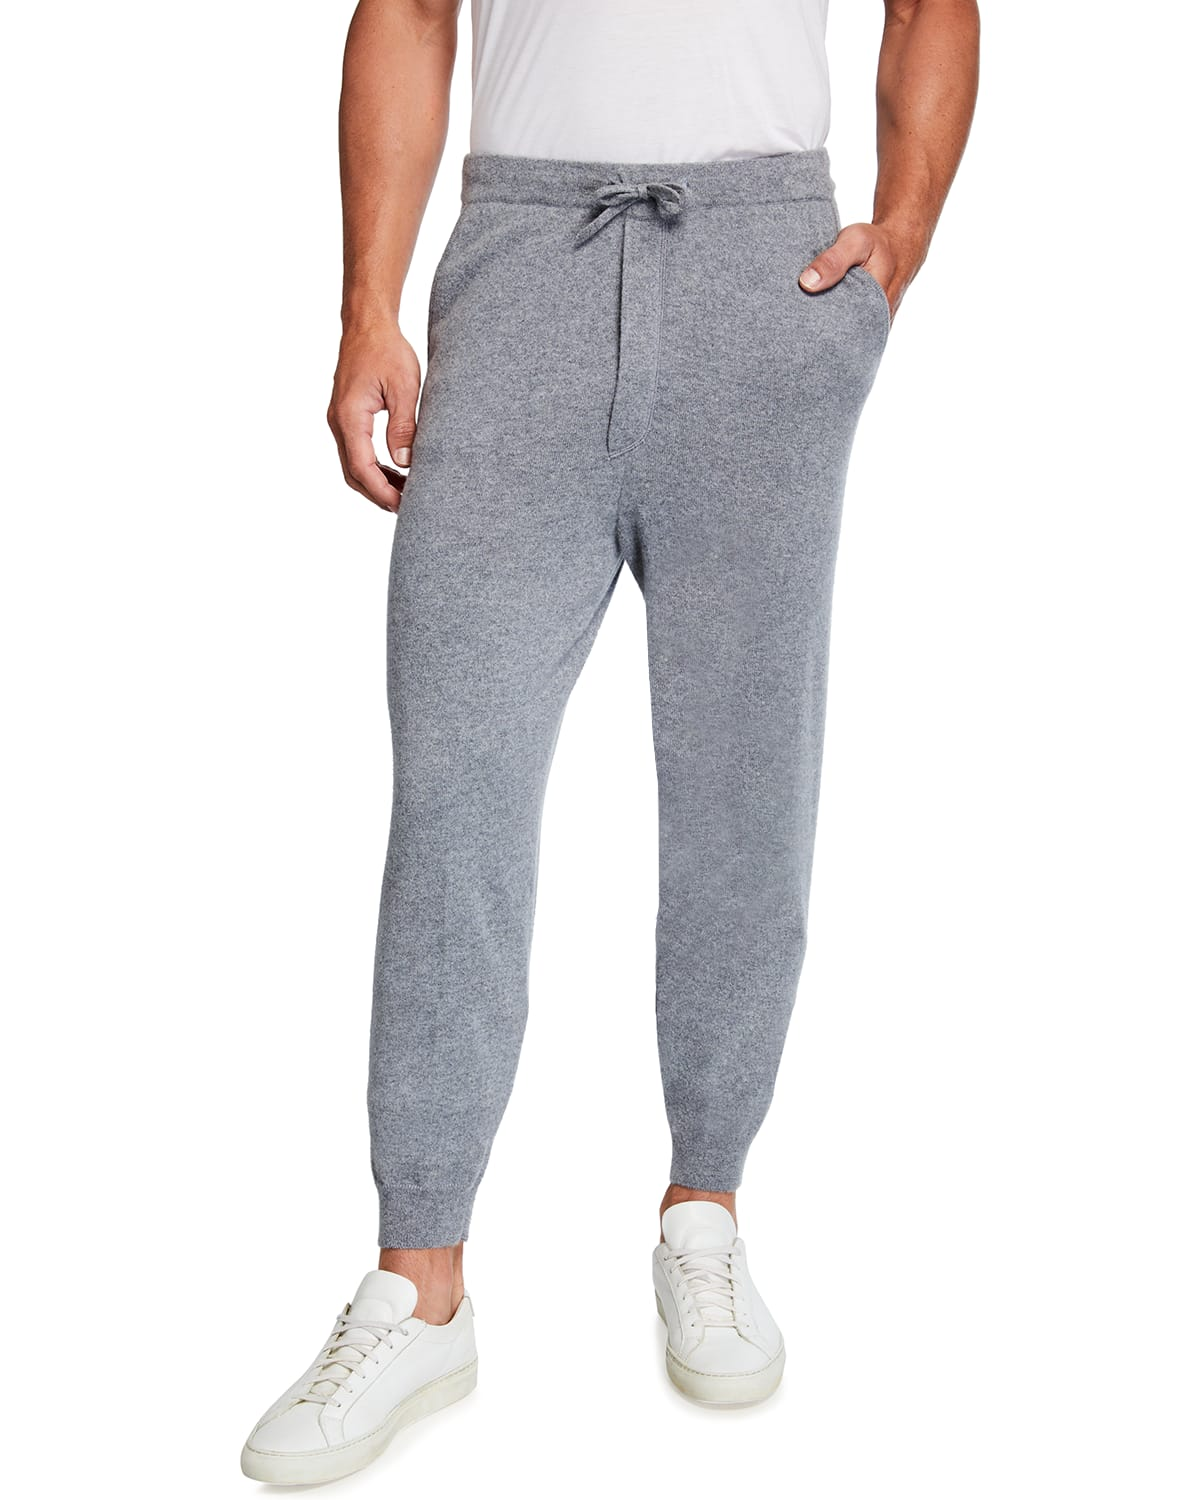 Men's Recycled Cashmere Banded Drawstring Jogger Pants